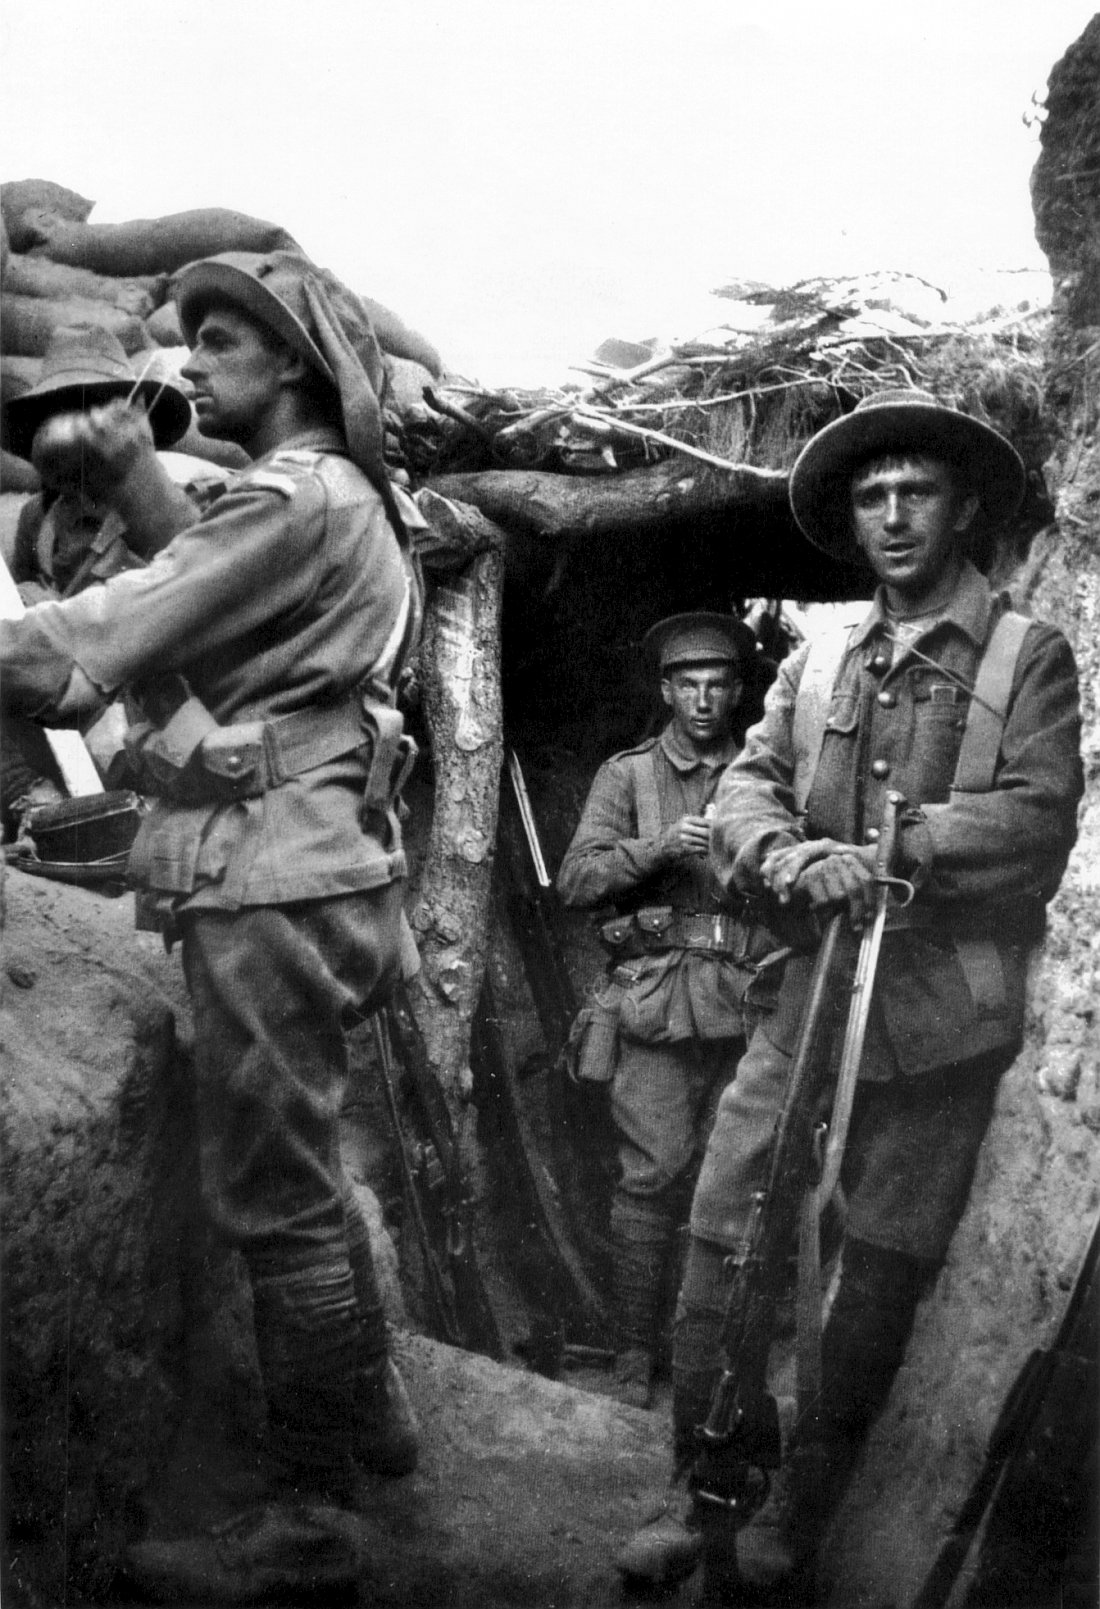 Infantry from the Australian 1st Brigade in a captured Turkish trench at Lone Pine, 6 August 1915, during the Battle of Gallipoli. Also present are members of the 7th Battalion, of the 2nd Brigade.